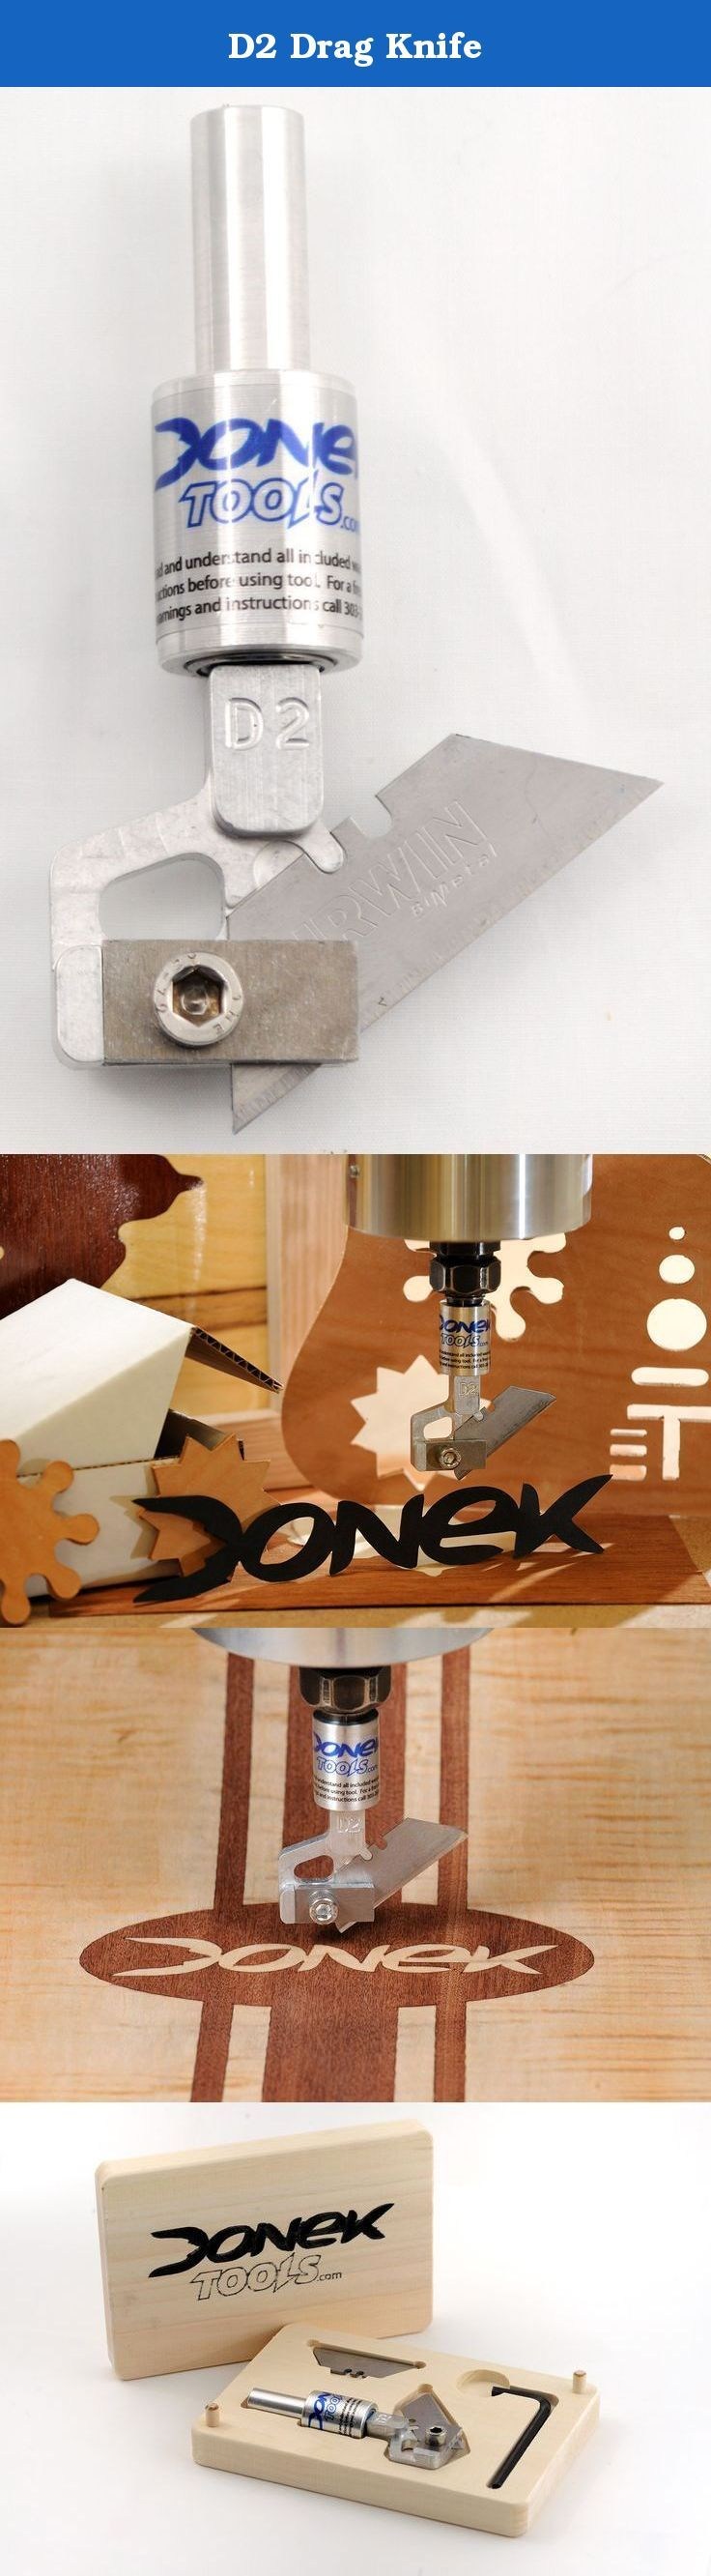 D2 Drag Knife. The Donek Tools Drag Knife can be used to cut almost anything you would cut with a utility knife, but with the speed and precision of a CNC router or mill. The Donek Drag Knife fits into your CNC router or spindle collet, making it a universal fit for almost any CNC router or mill available. The tools were designed to use a utility knife blade (though a specific type) which dramatically reduces the cost of consumable blades. Donek Drag Knives are being used in industry and…